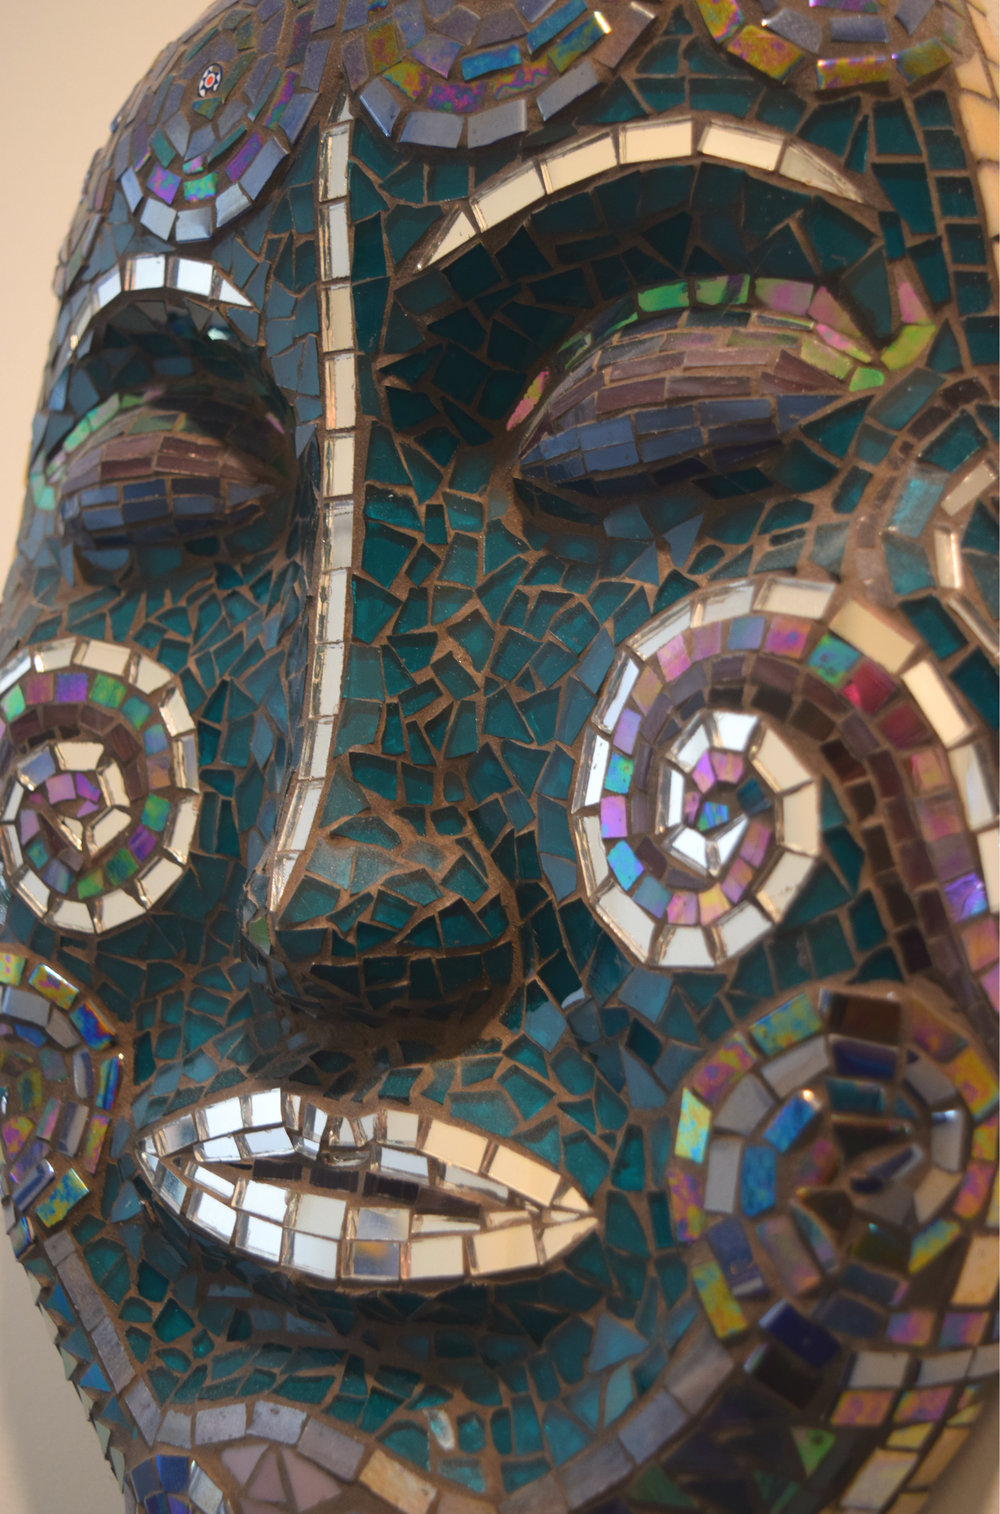 Spiralled Mask (Stained Glass, Millefiori, Mirror, Glass Tiles)